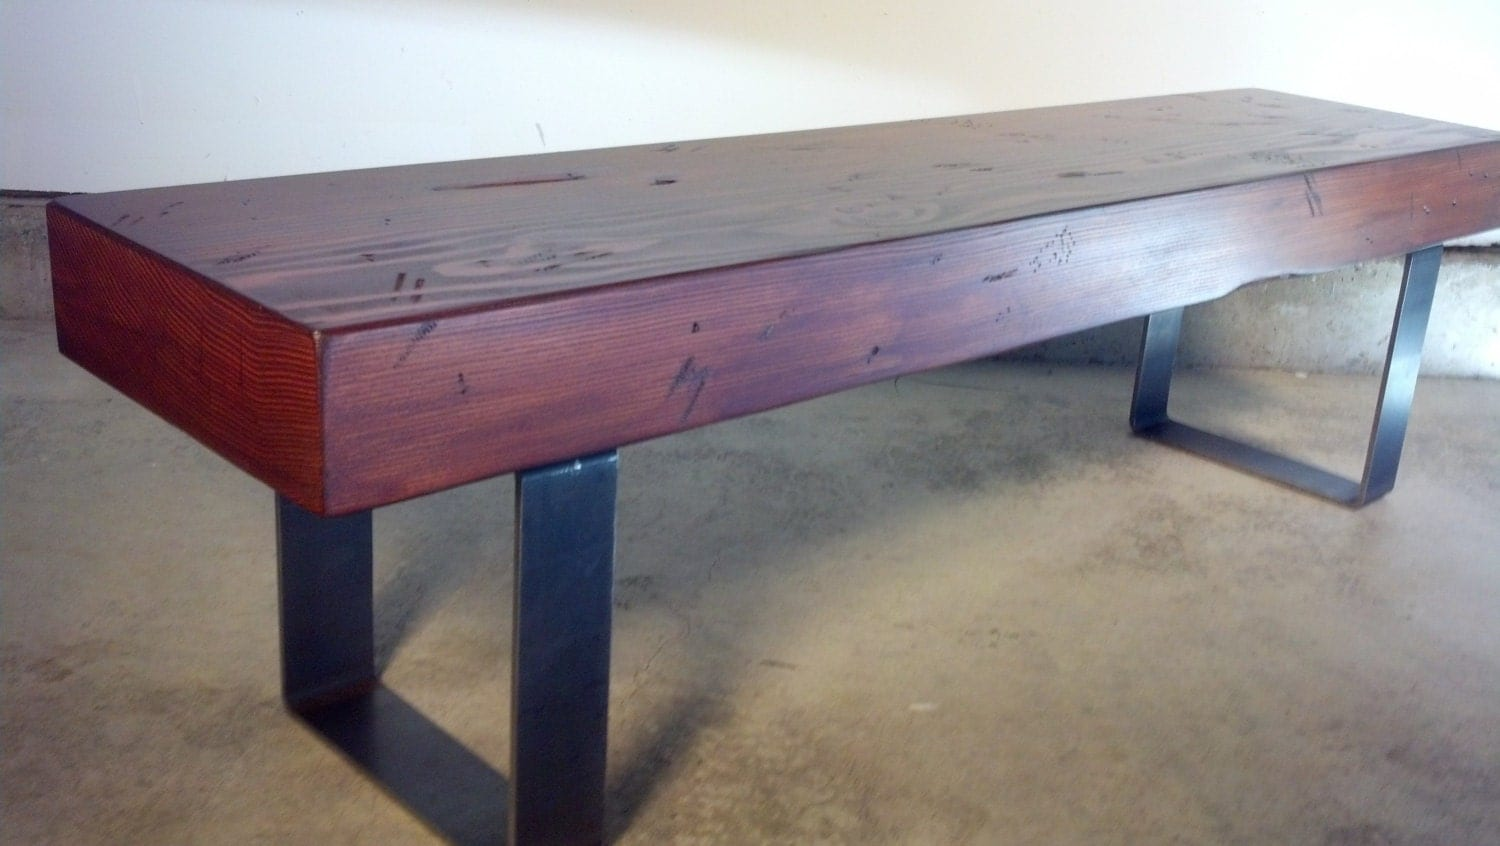 Rustic & Industrial Entryway Bench with Solid Wood by ironlandon